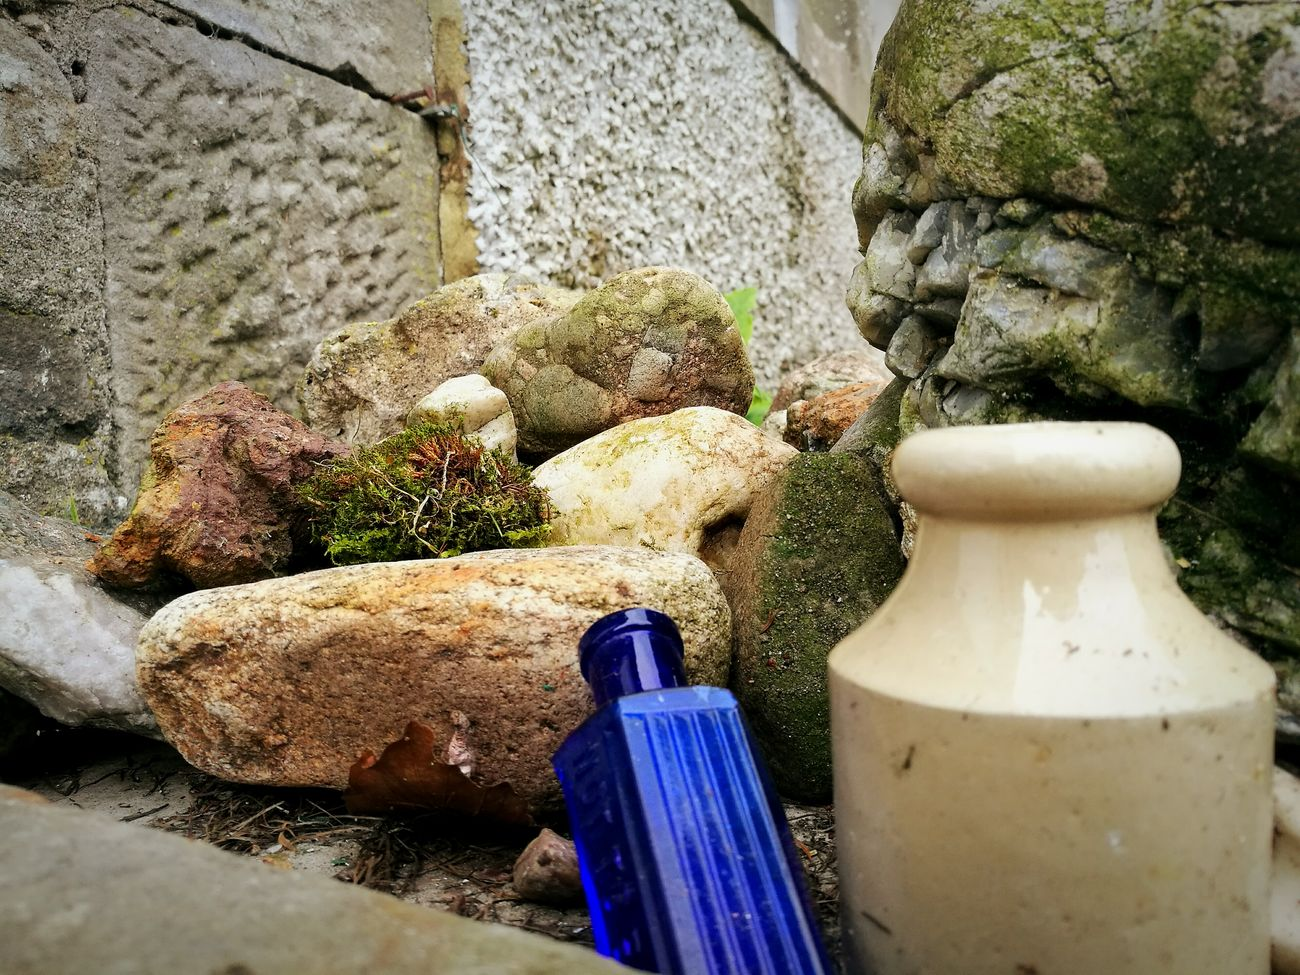 EyeEmNewHere Moss & Lichen Stones Close-up Outdoors Built Structure Old Bottle